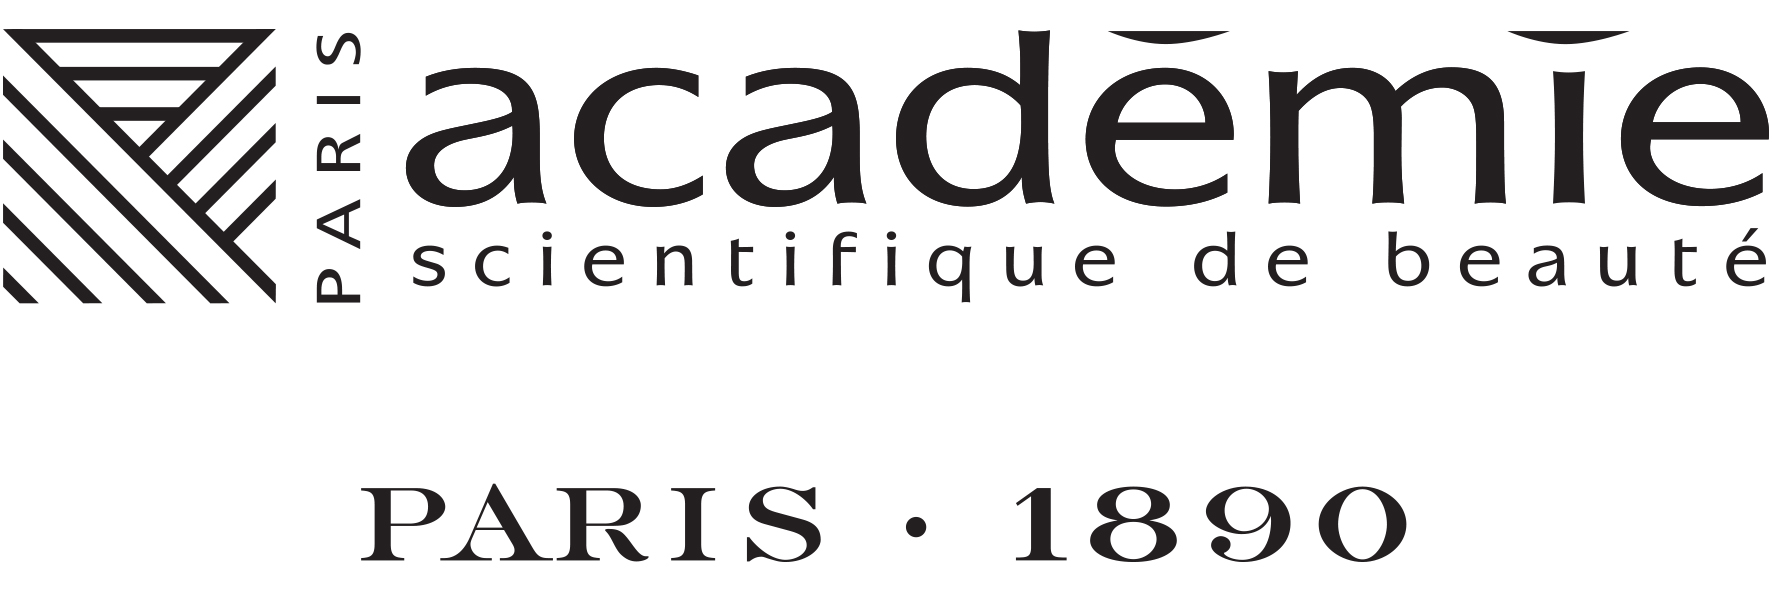 Académie Scientifique de Beauté - logo